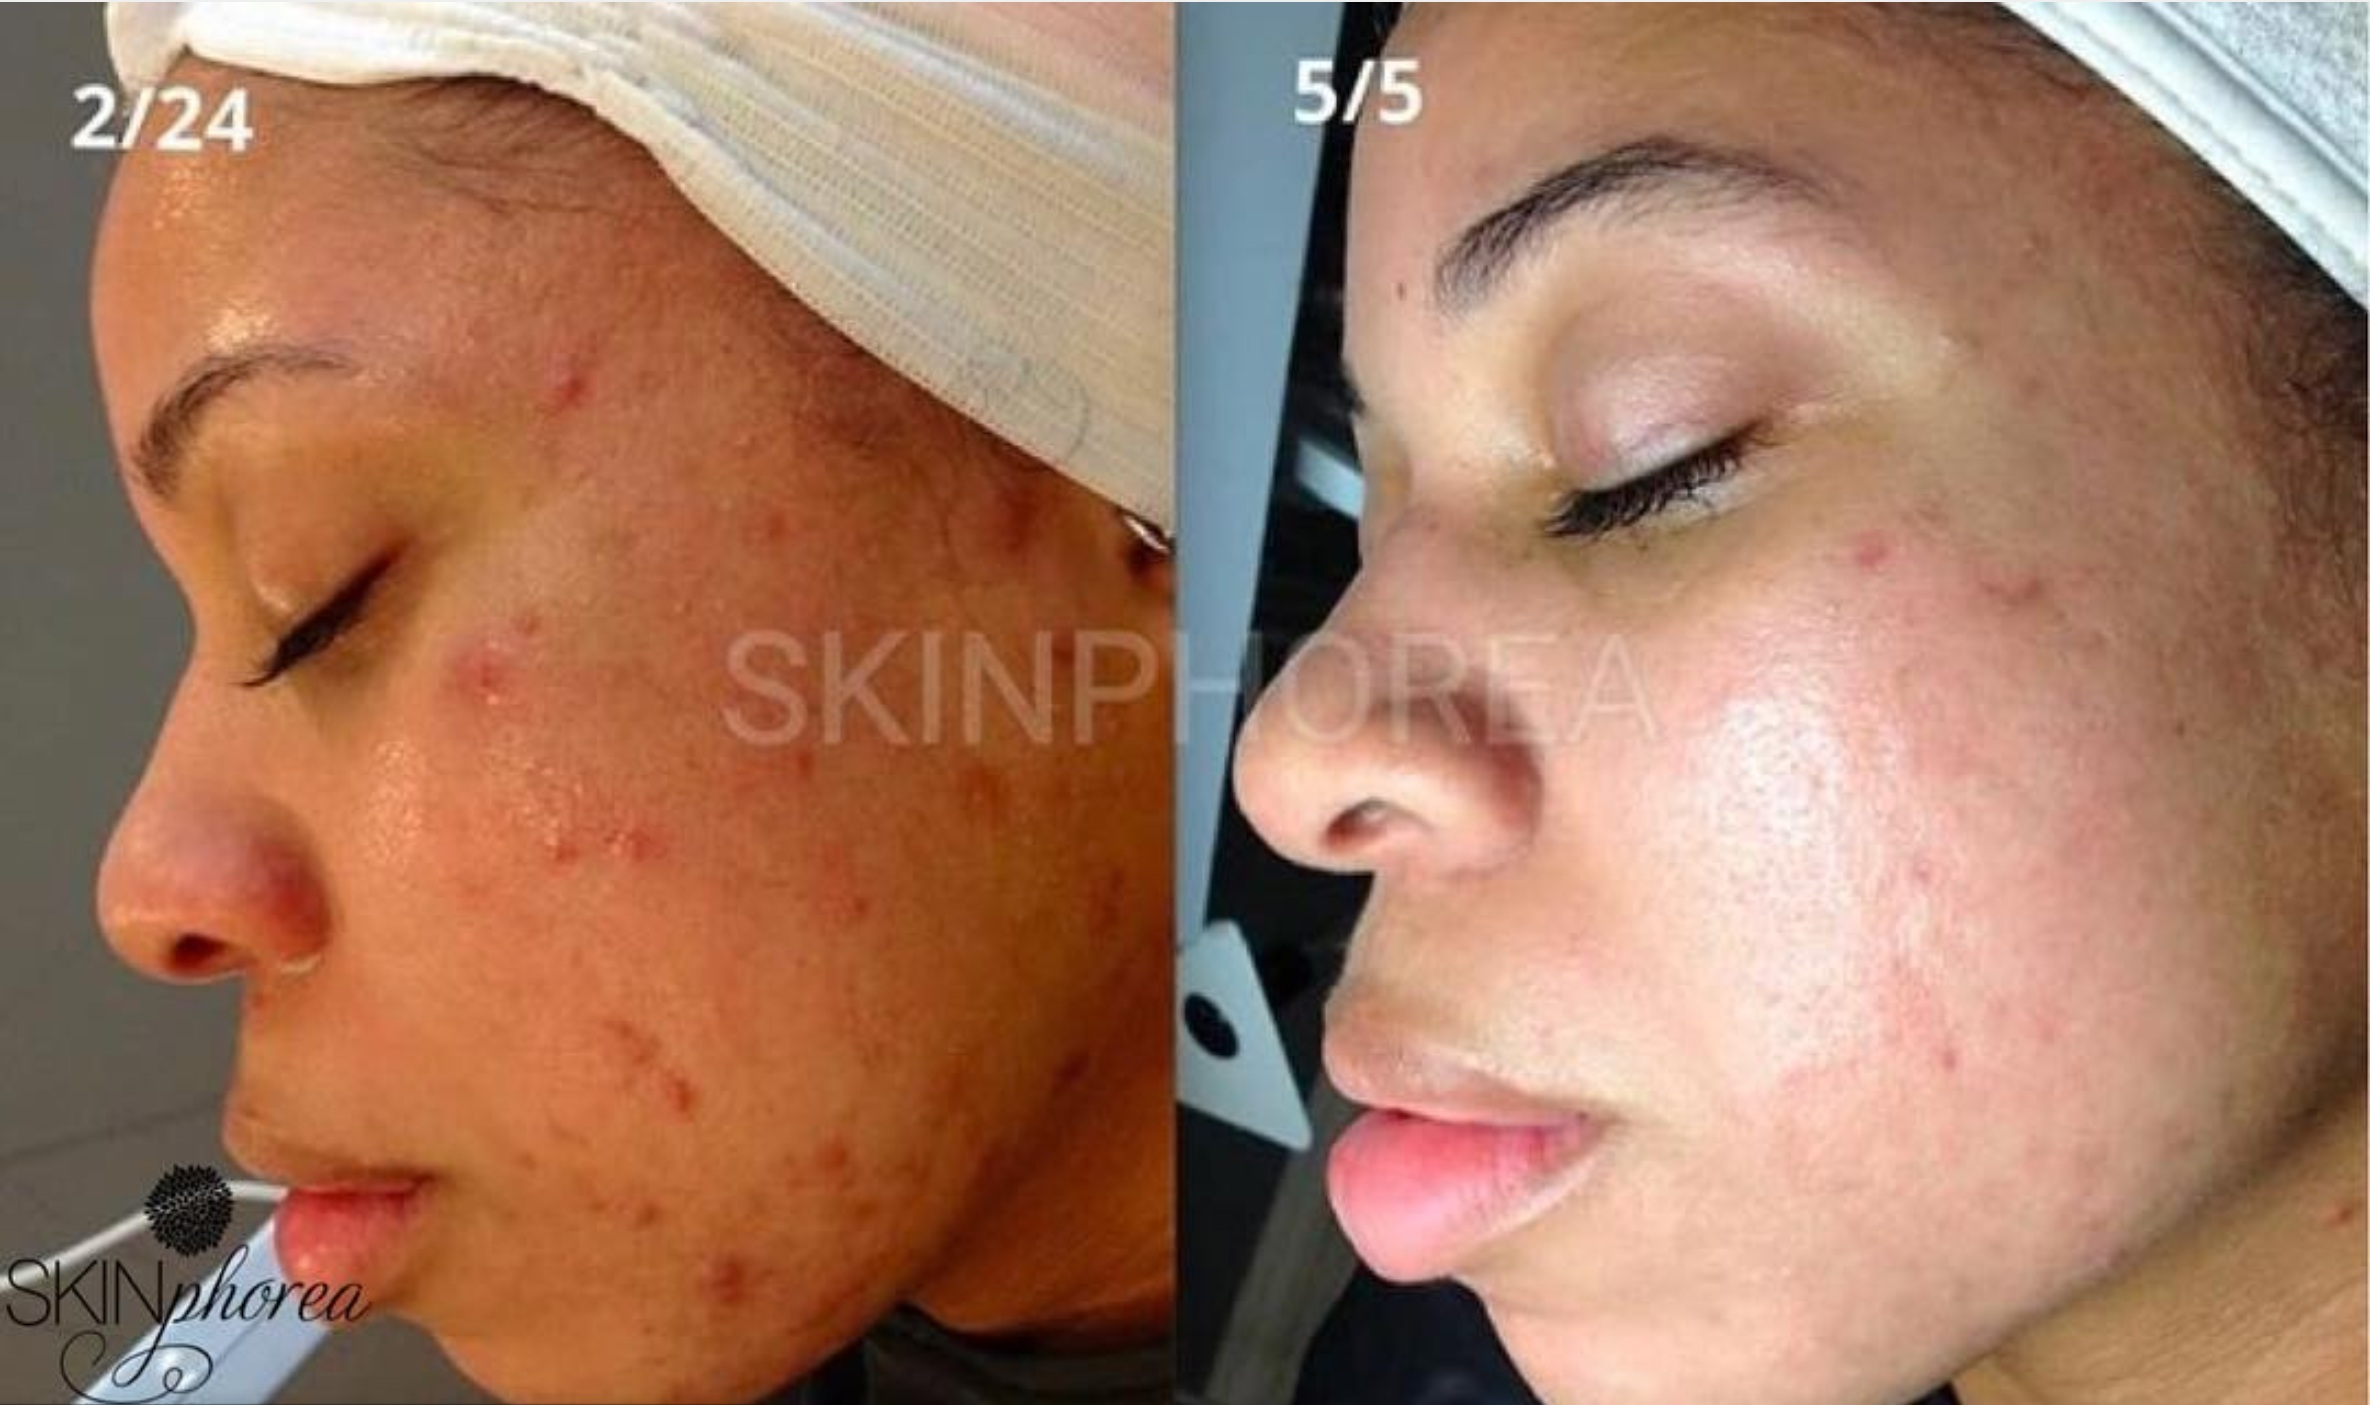 Shaquia's skincare journey after receiving treatments and advice not to avoid eating dairy from the estheticians at Skinphorea.